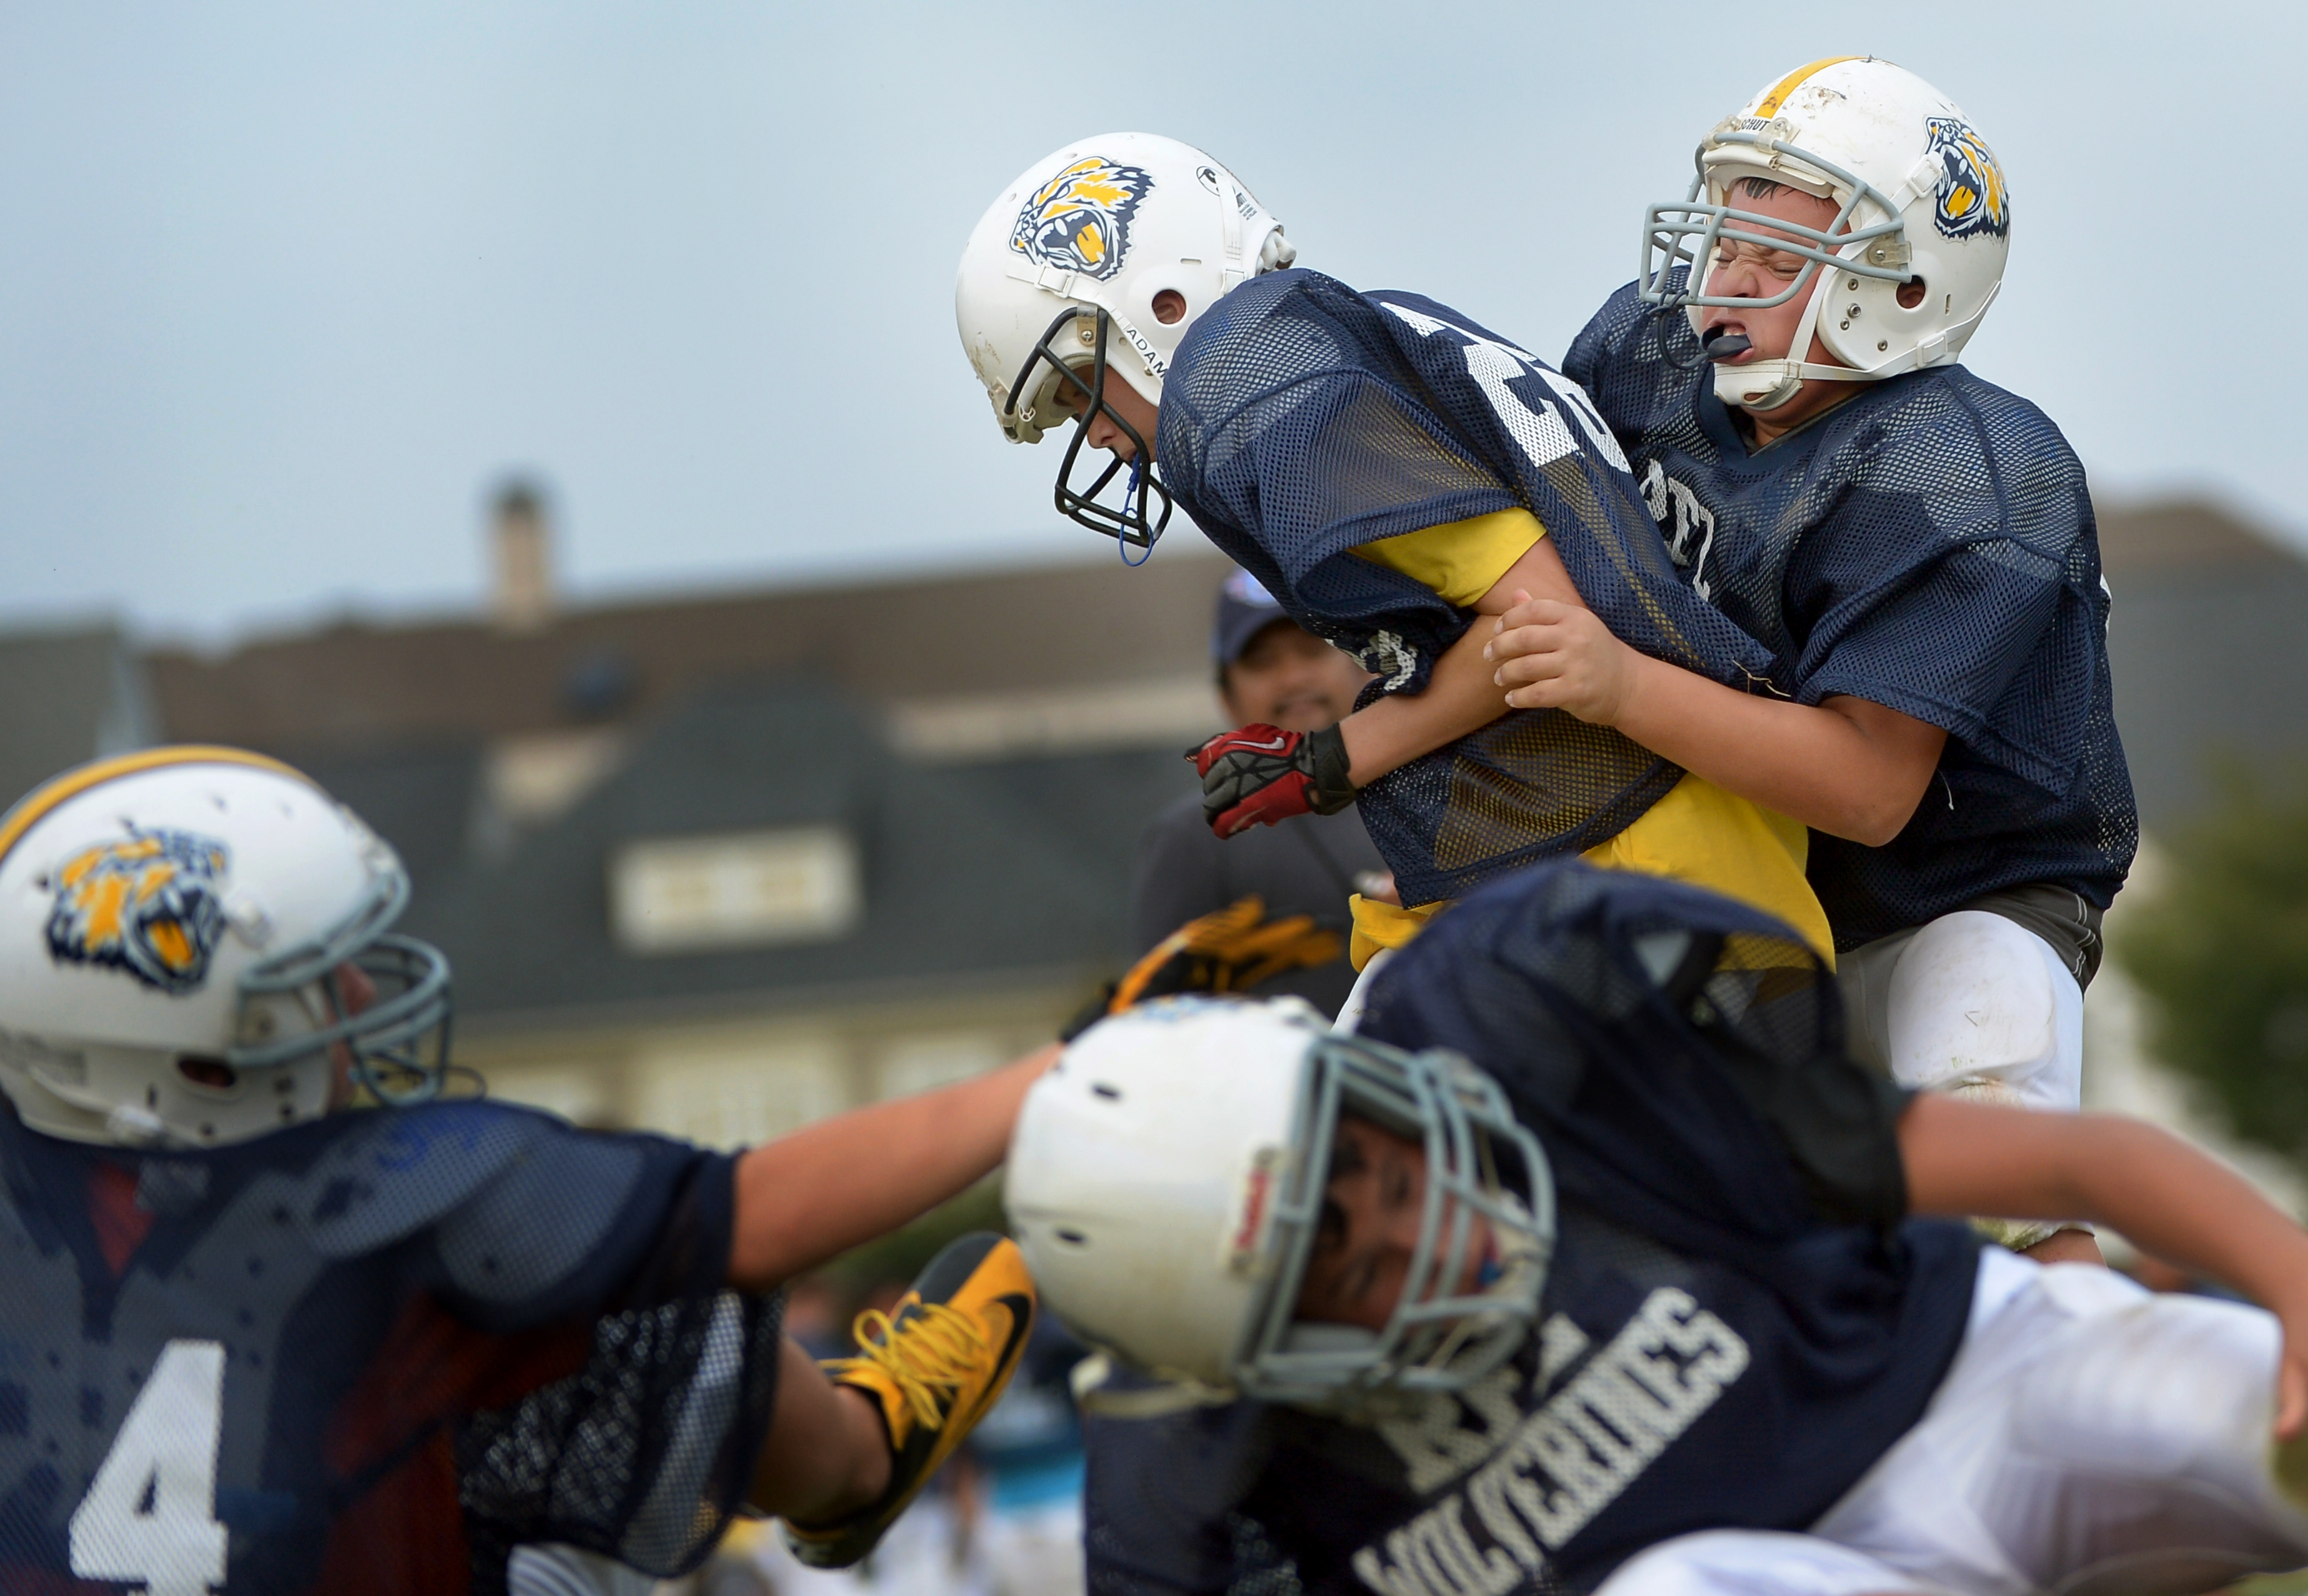 Niko Berns, 13, right, tackles a teammate during practice at Mattie Stepanek Park in Rockville, Md. on Sept. 26, 2012.